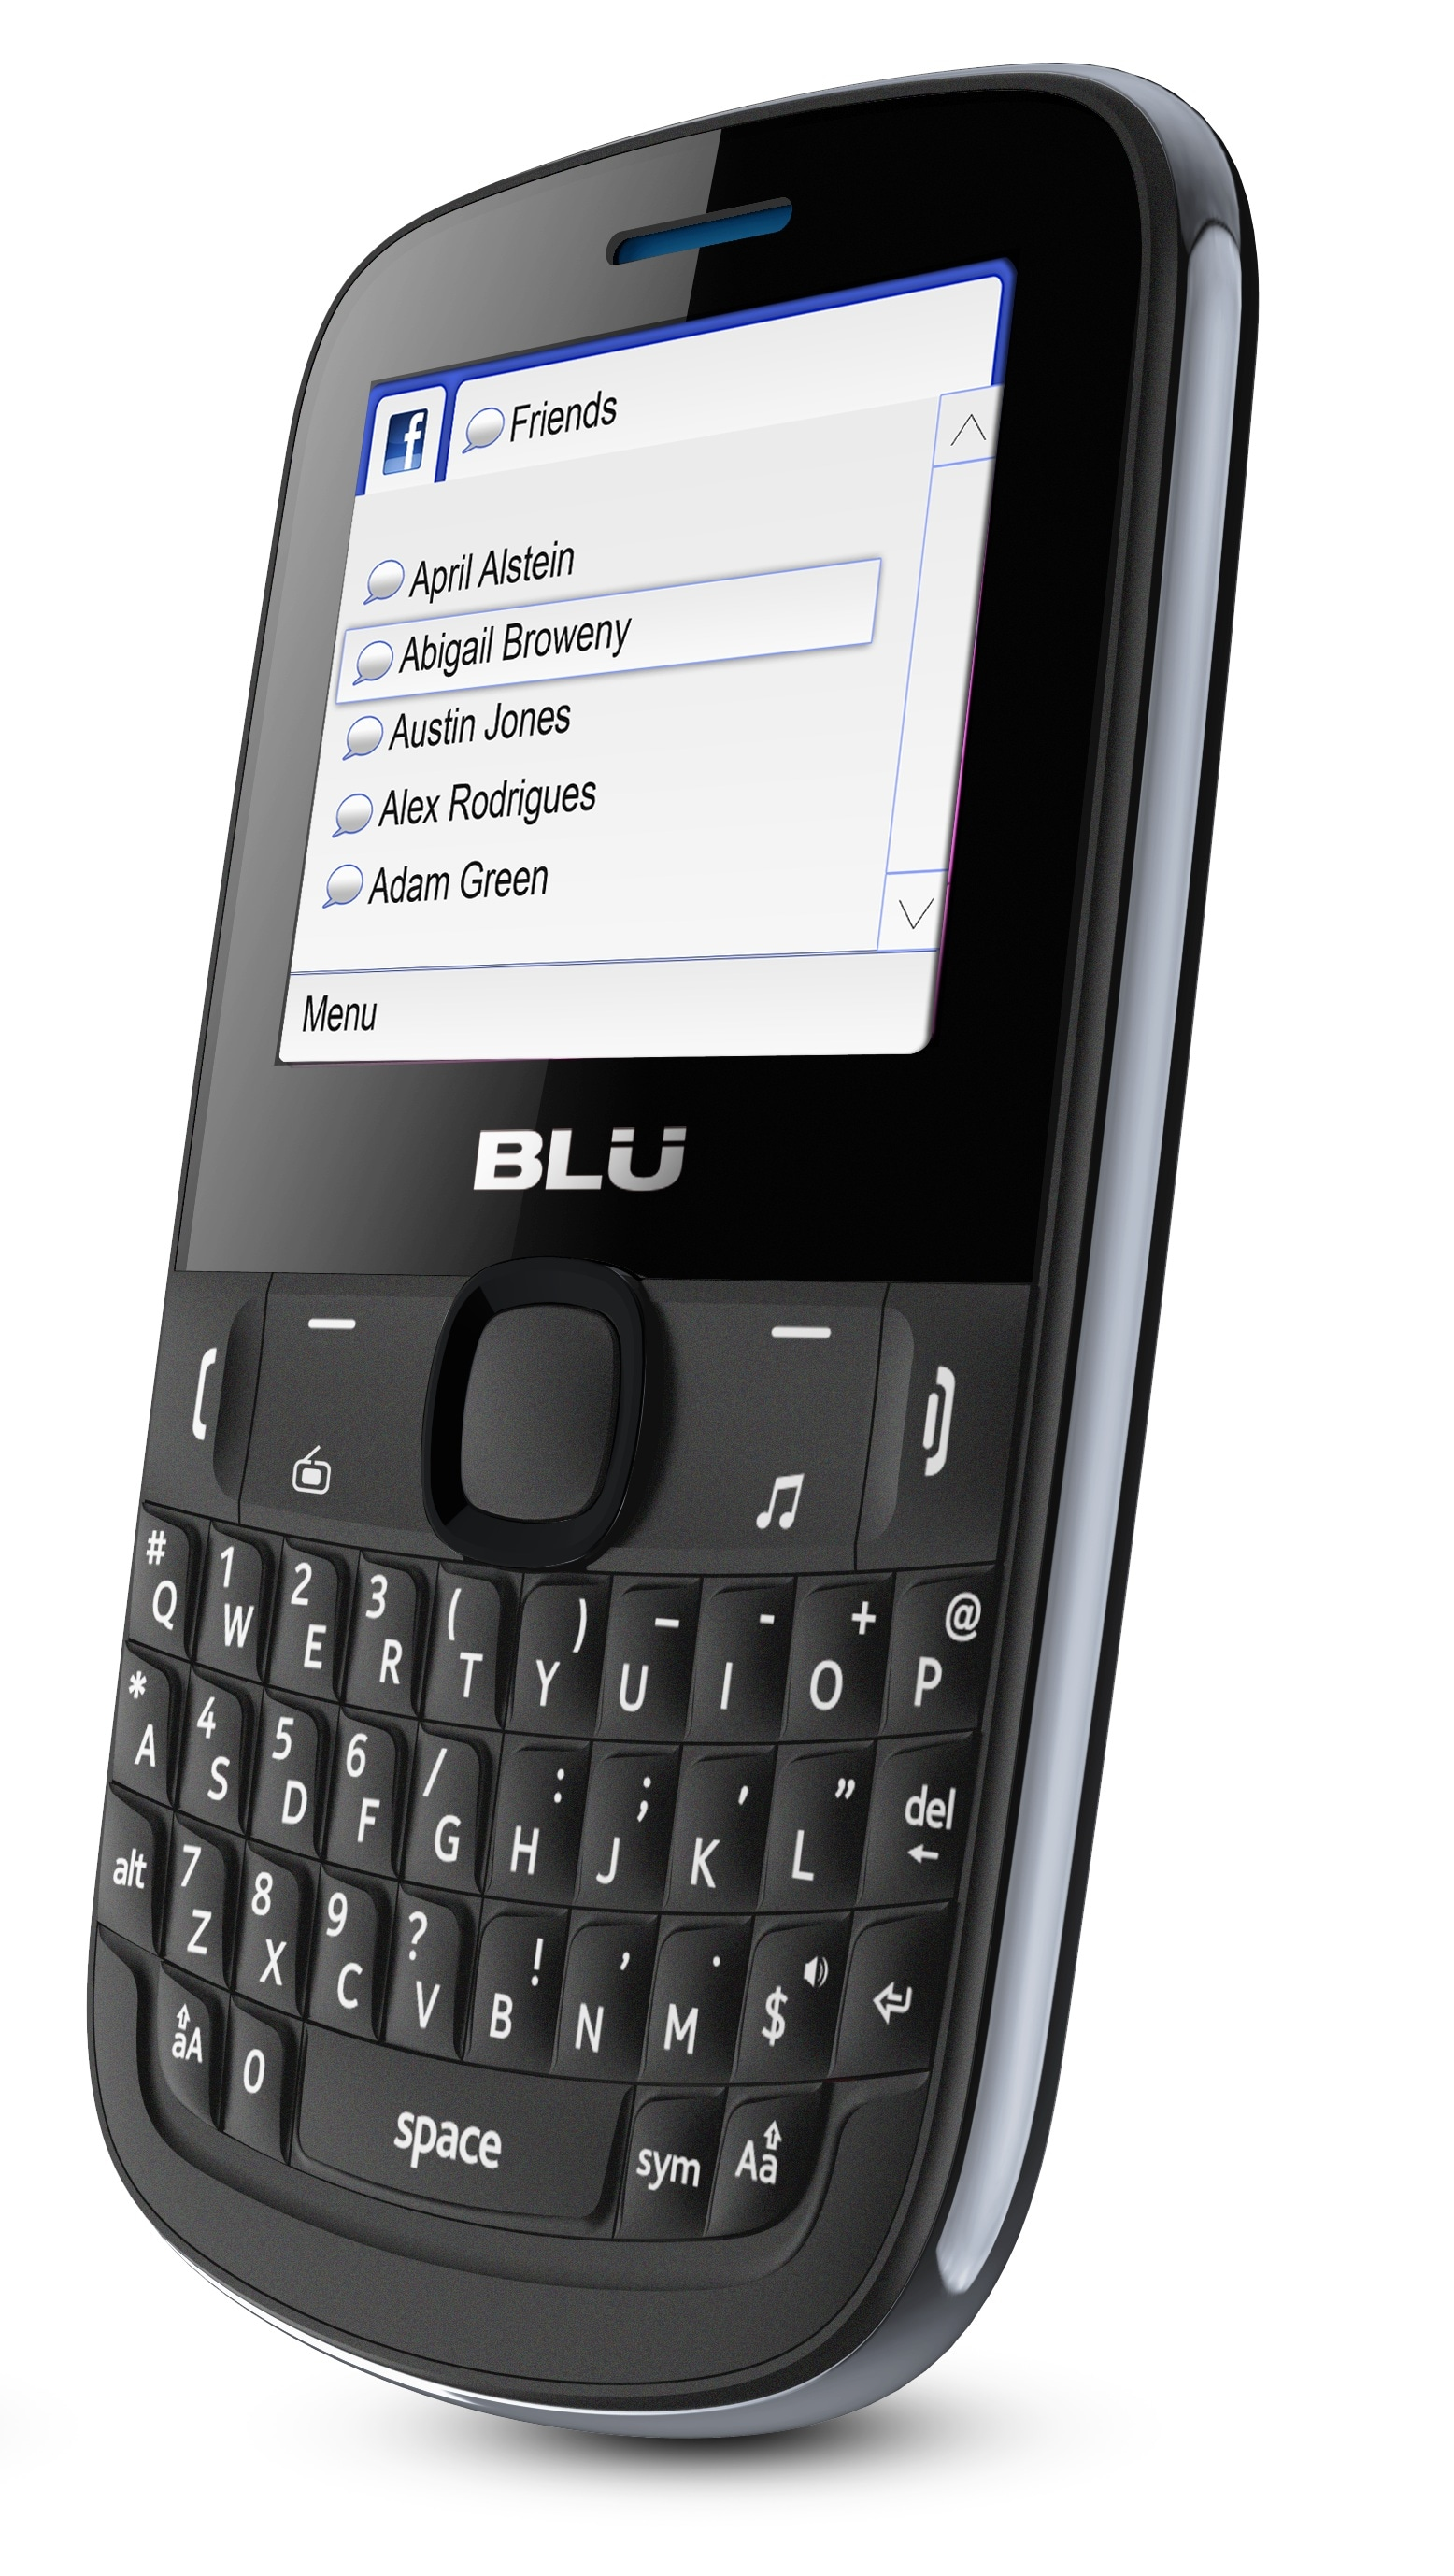 BLU Tattoo S Q192 GSM Unlocked QWERTY Cell Phone - Gray